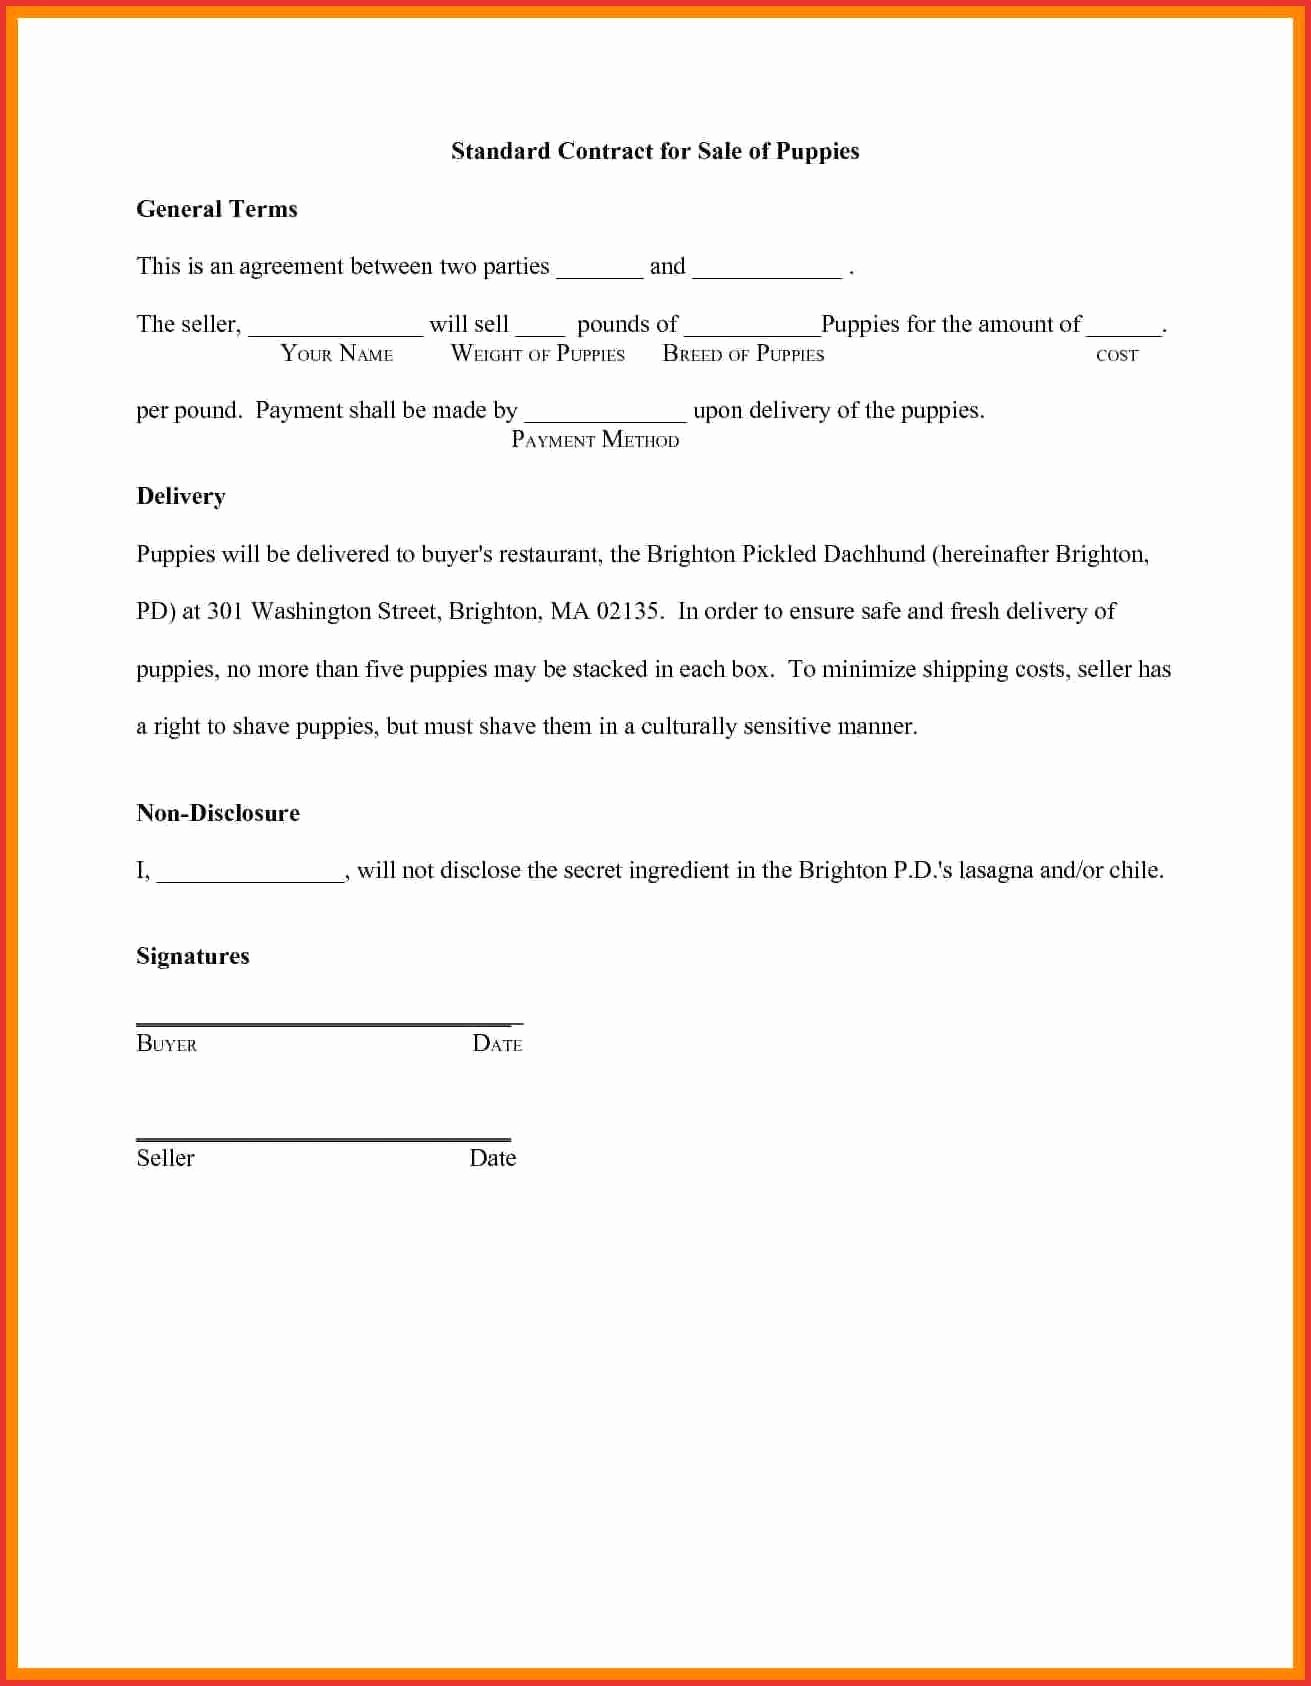 Agreement Template Between Two Parties Awesome Letter Agreement Template Between Two Parties Examples